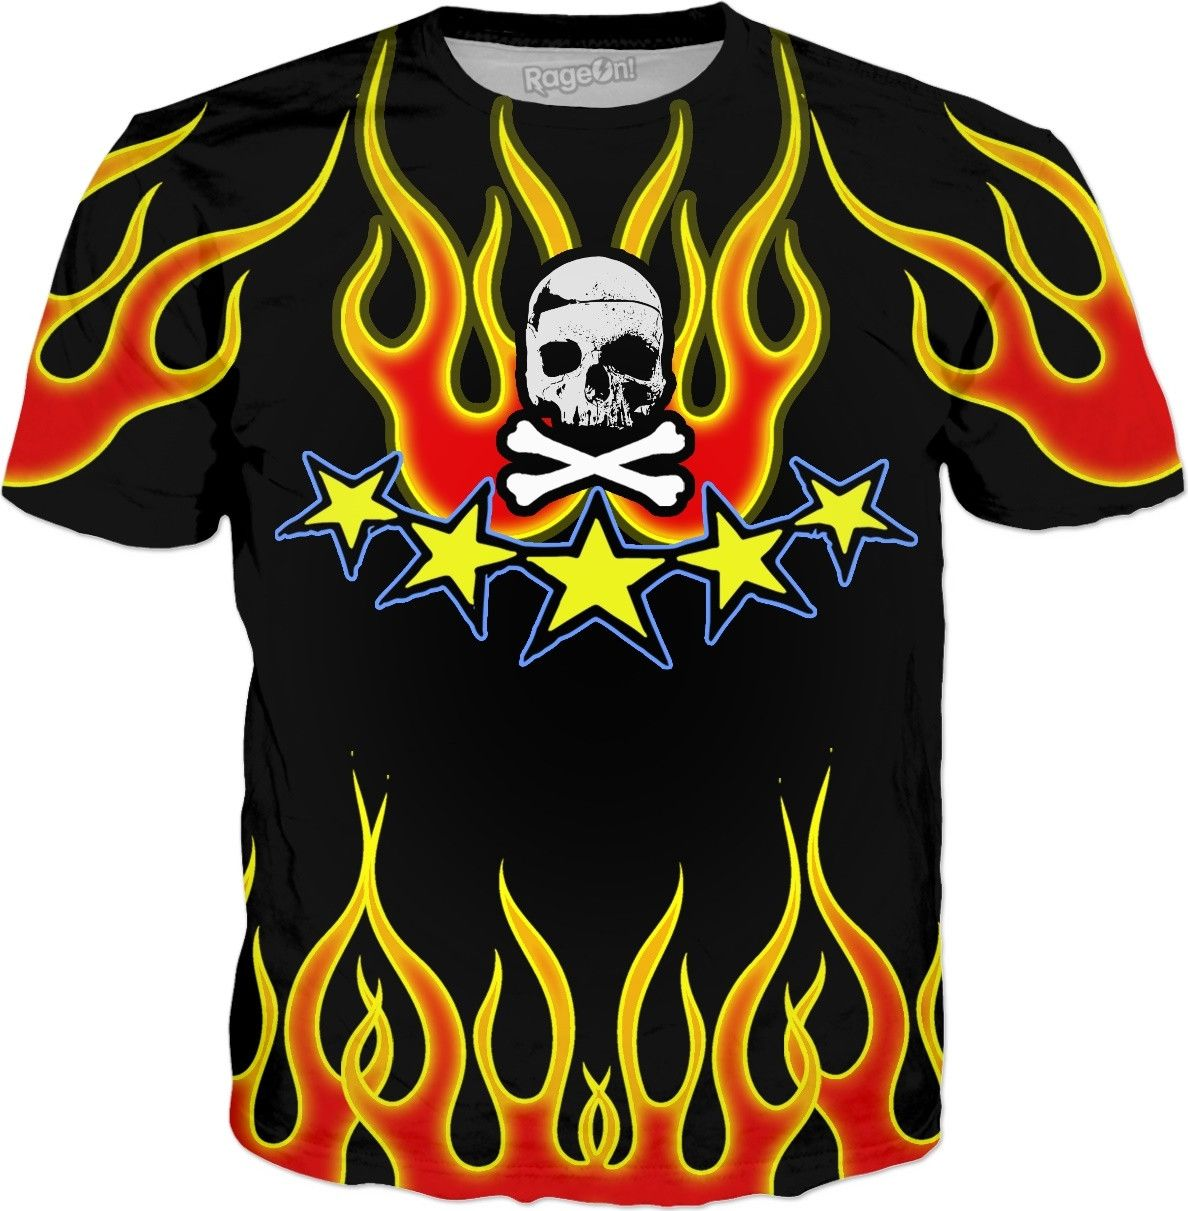 Check out my new product https://www.rageon.com/products/flamin-5-star-g-5 on RageOn!